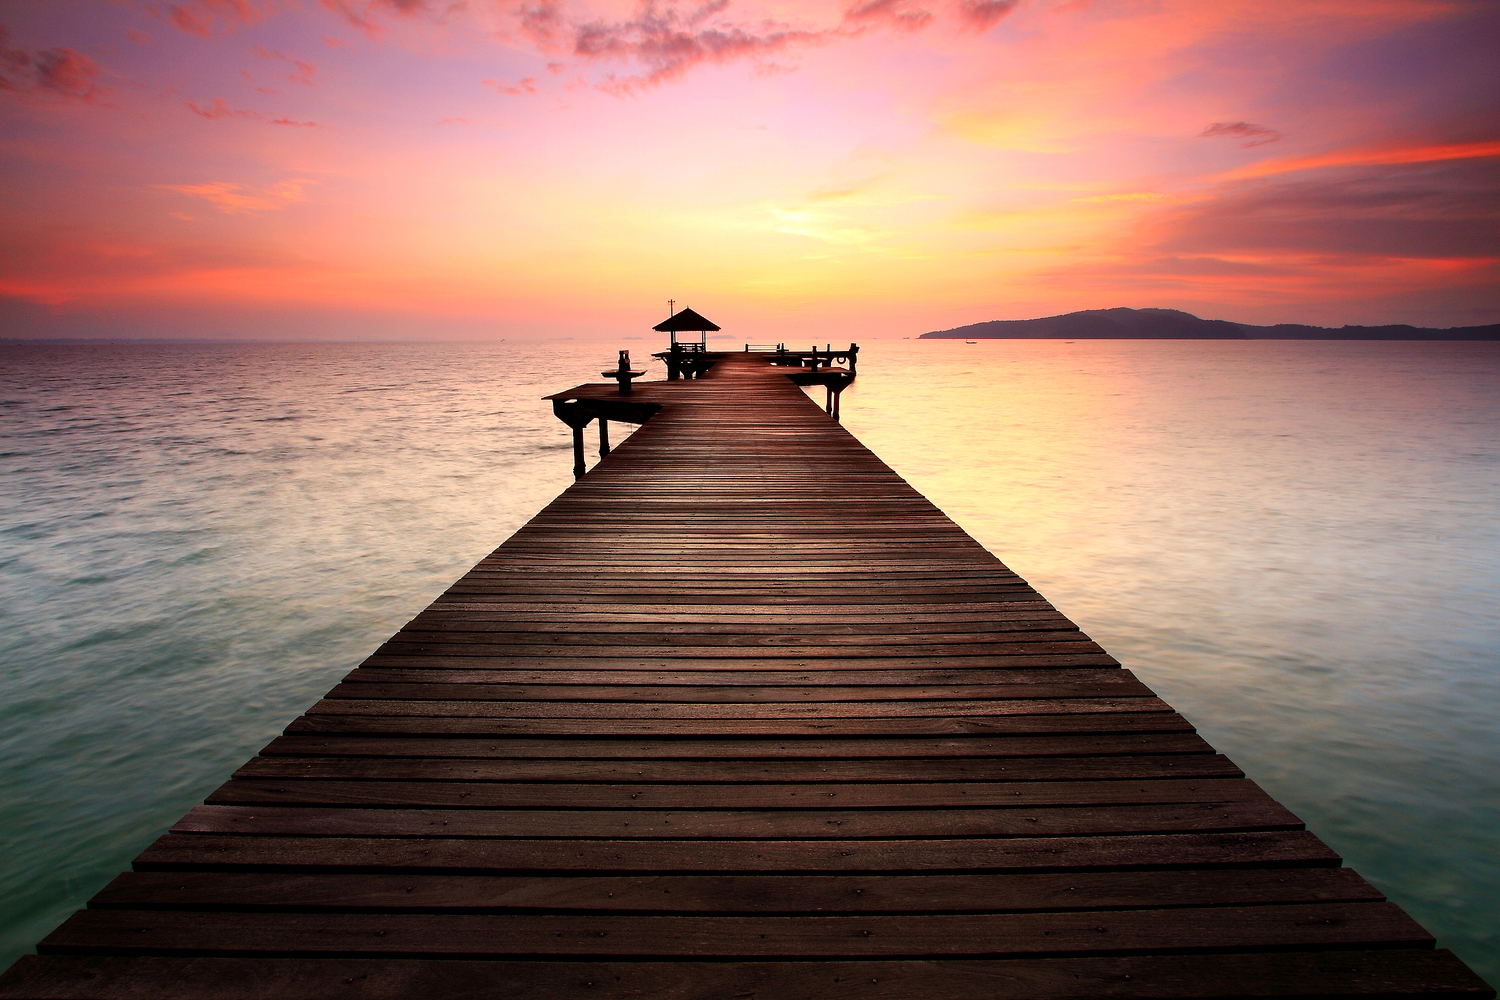 Dock leading out to the ocean at sunset